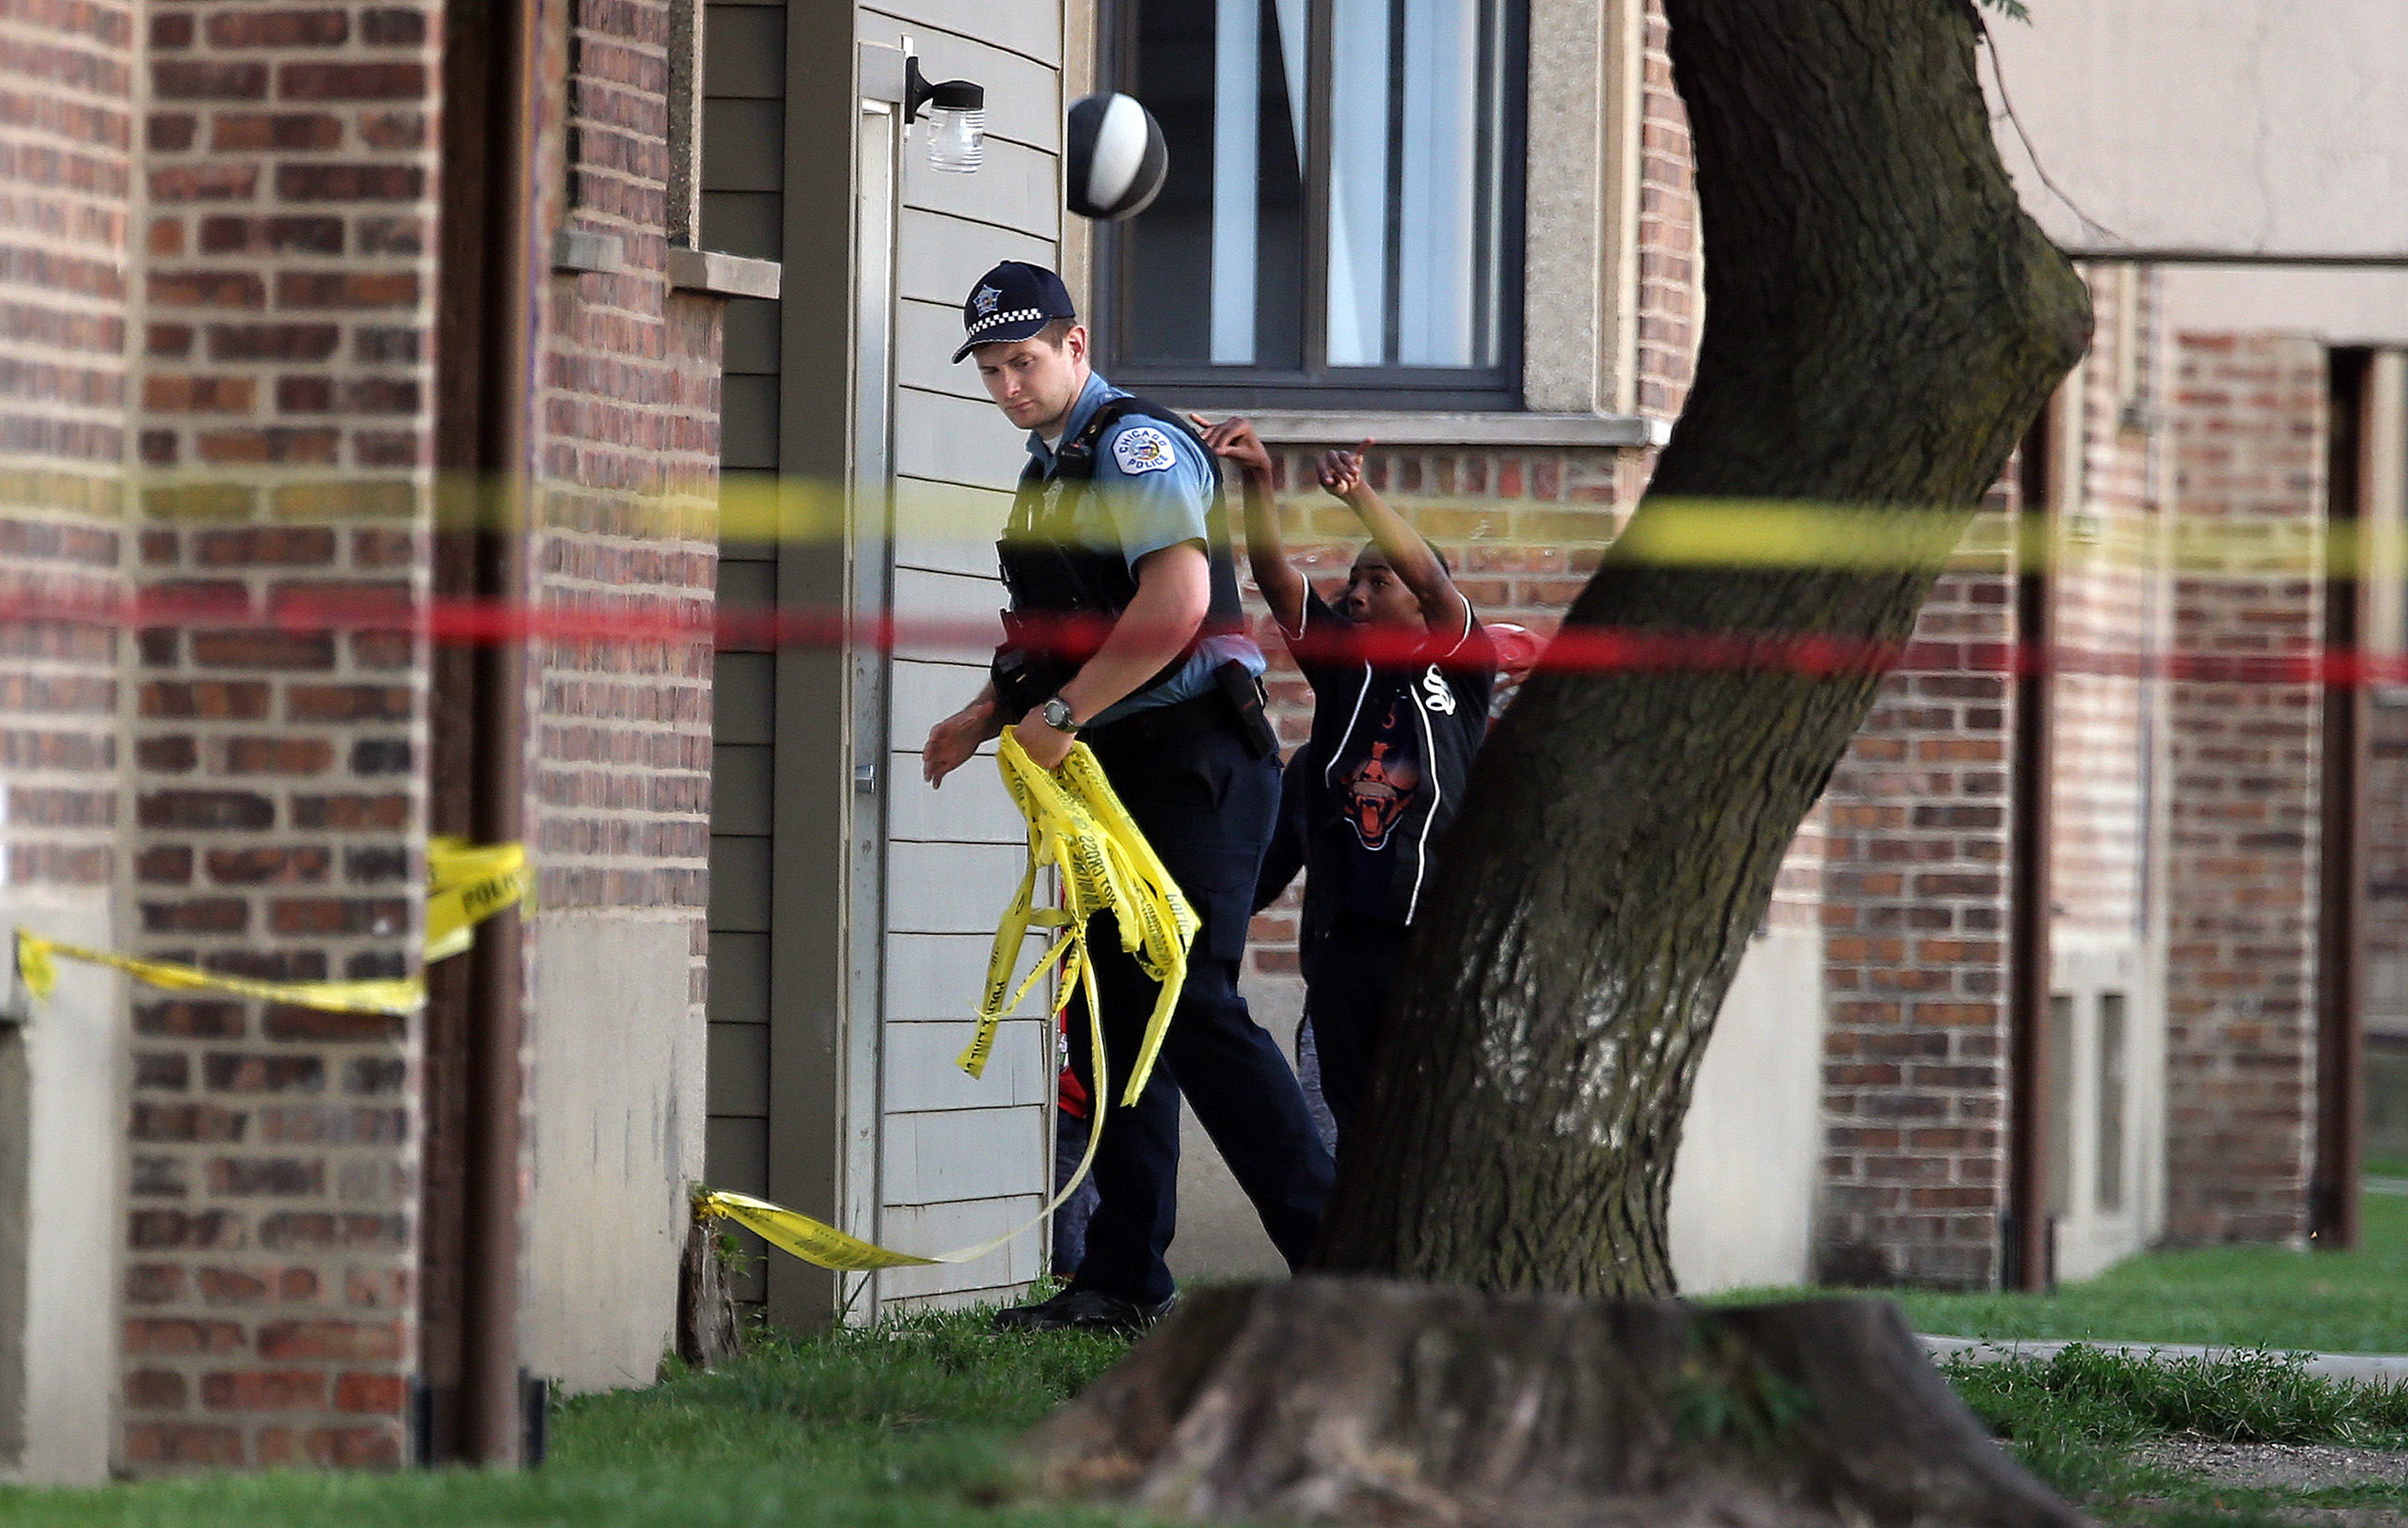 Kids play basketball as Chicago Police remove crime scene tape after a fatal shooting on Calumet Avenue south of 63rd Street on Aug. 26, 2016.